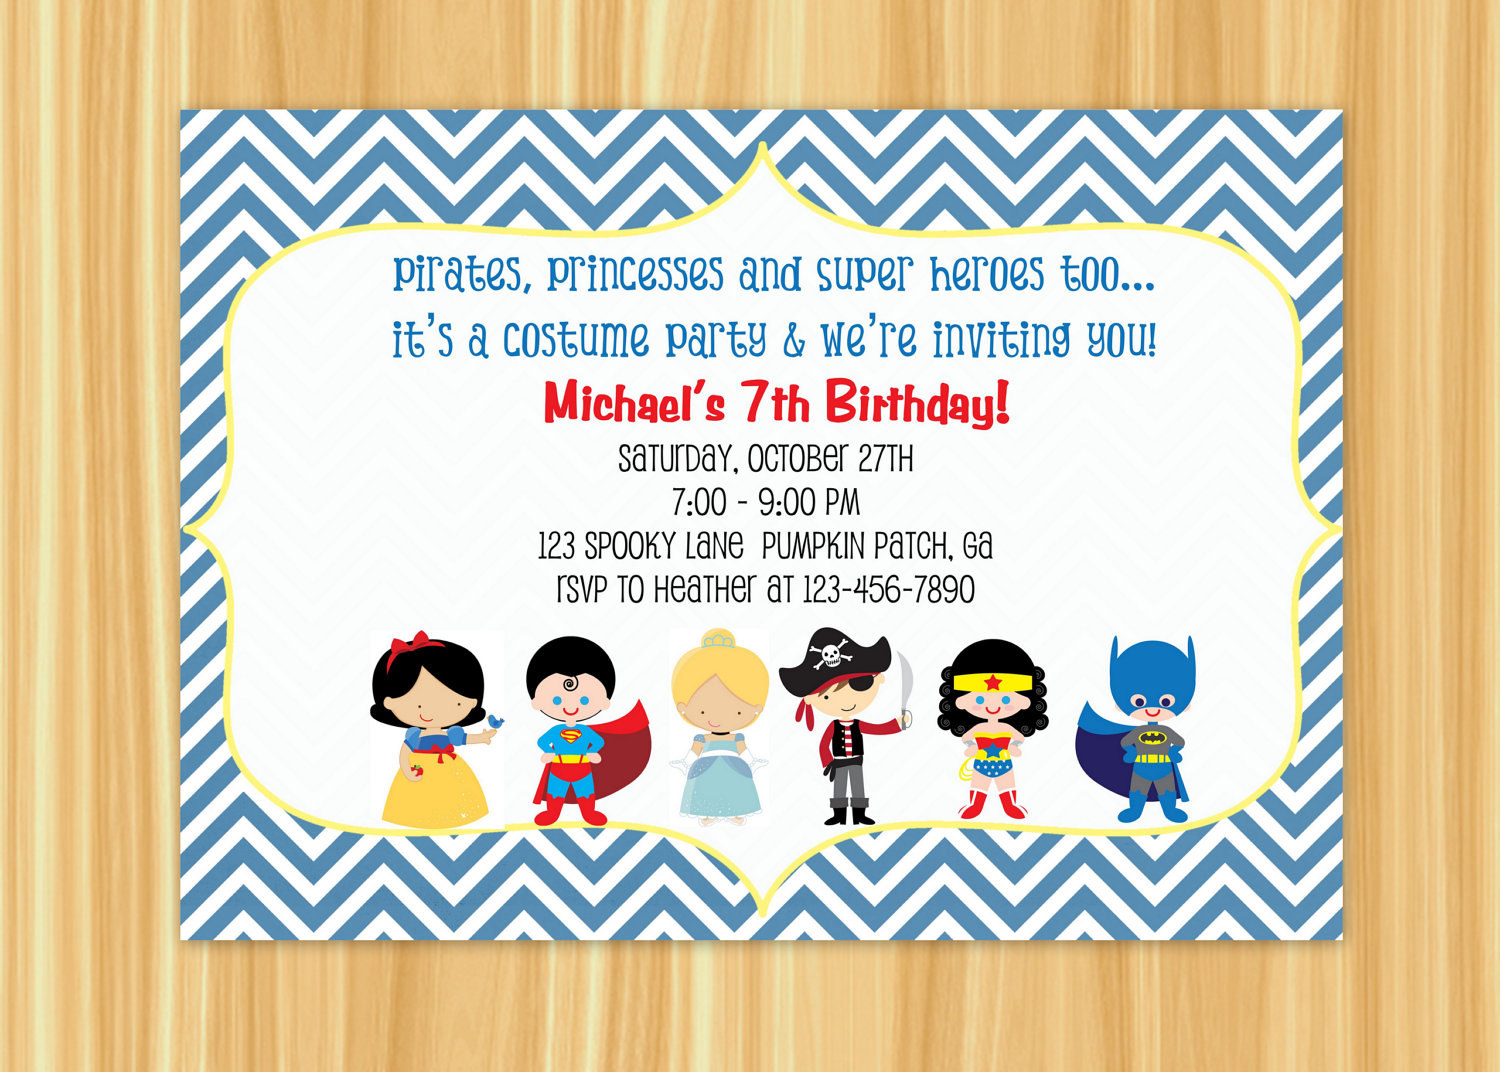 1000+ Images About Dress Up Costume Birthday Party On Pinterest